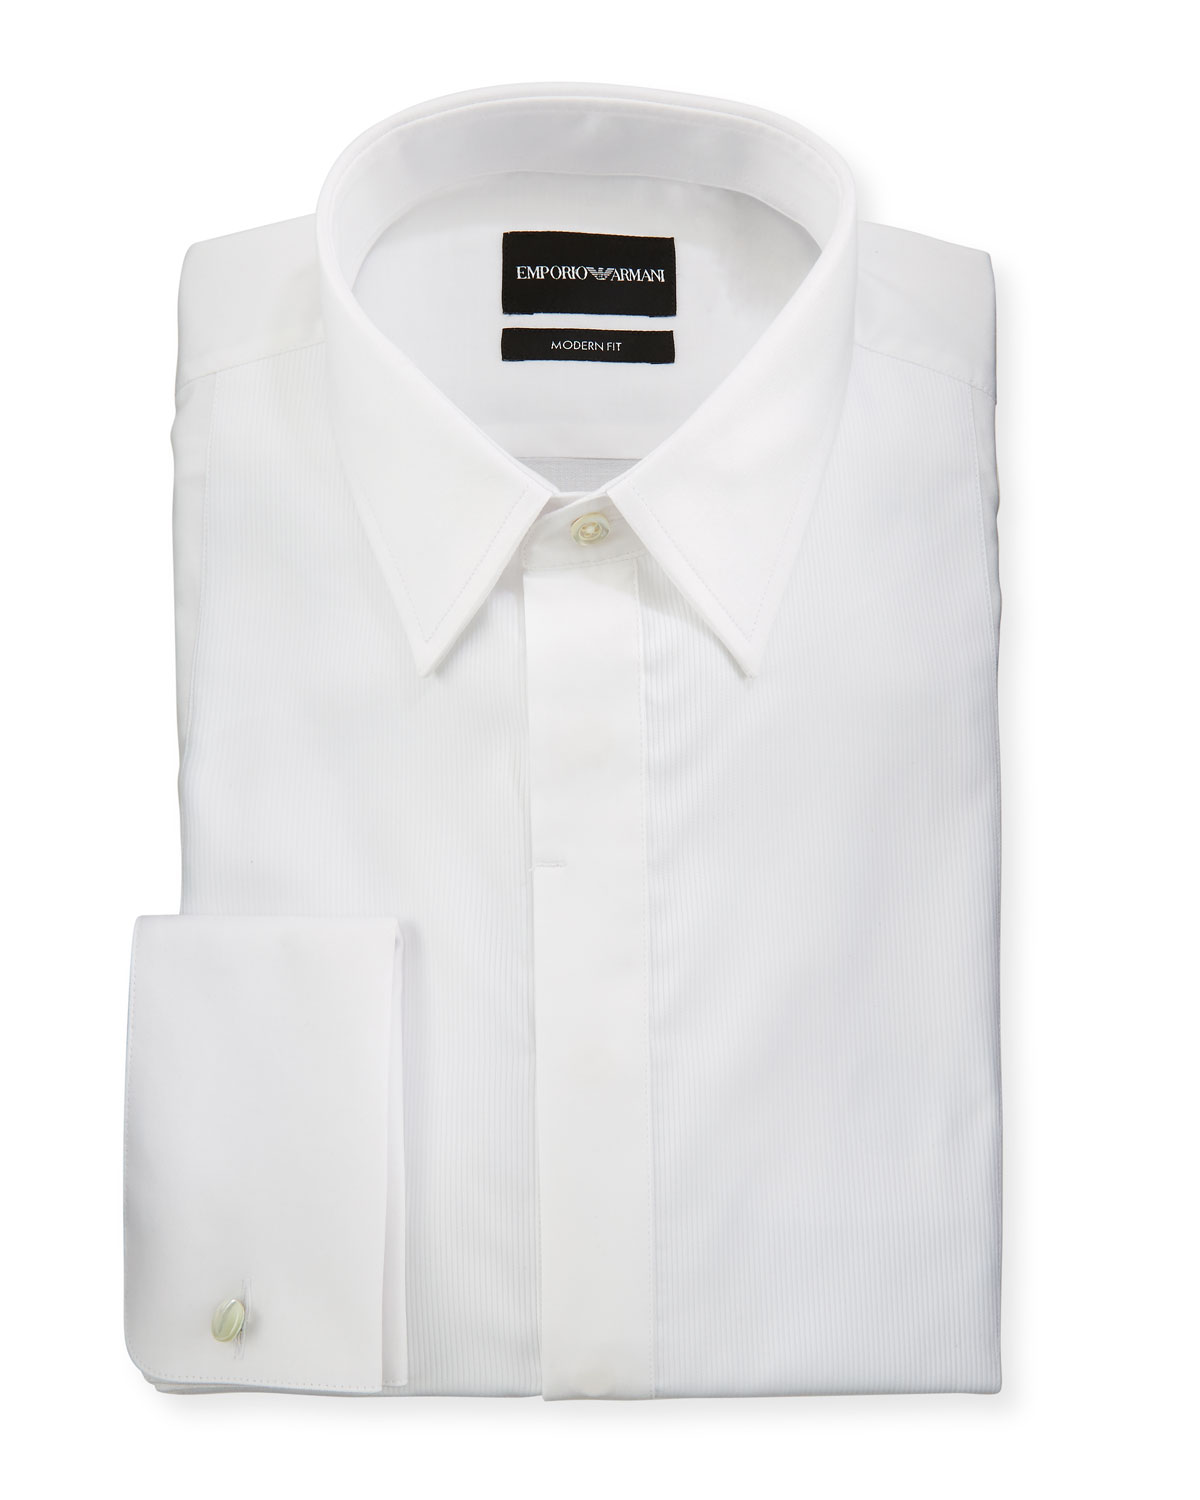 Men's Modern Fit Basic Tuxedo Shirt with Point Collar & French Cuffs